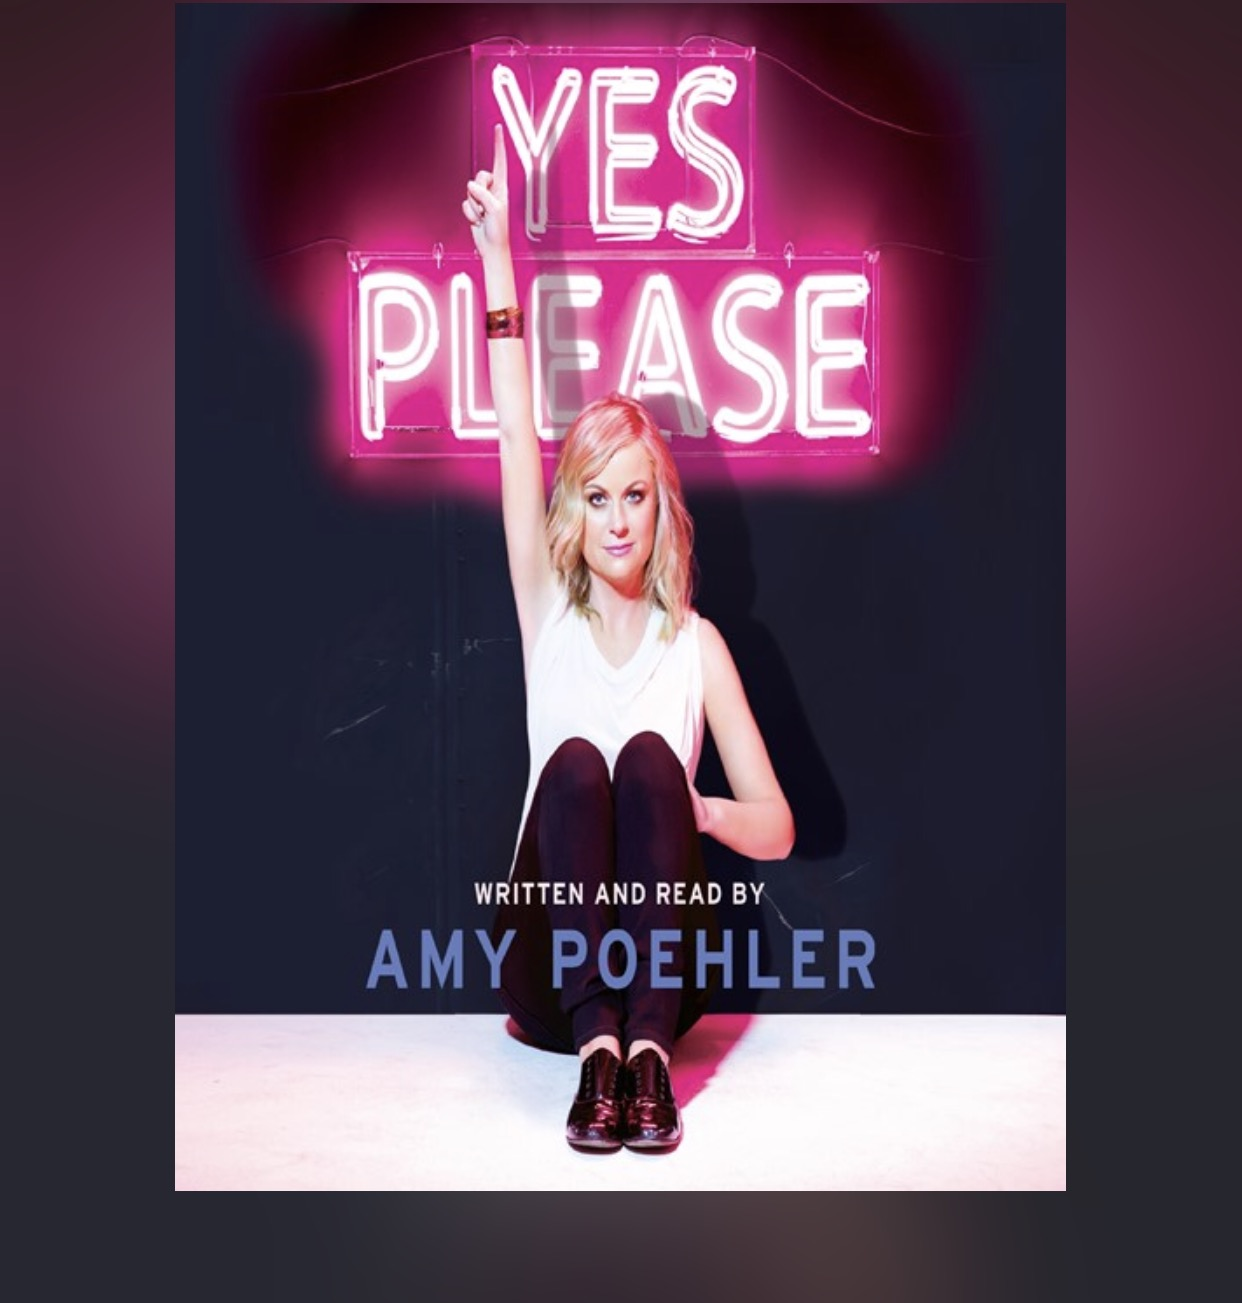 So I've listened to Amy Poehler's, Tiny Fey's, Amy Schumer, and Anna Kendricks and I have to say that Amy's is not the best (Poehler). Bless her-she says a million times in the book she hates writing so maybe she shouldn't do what she hates? Amy Schumer says she LOVED it and hers was better. PASSION SHOWS UP IN EVERYTHING!